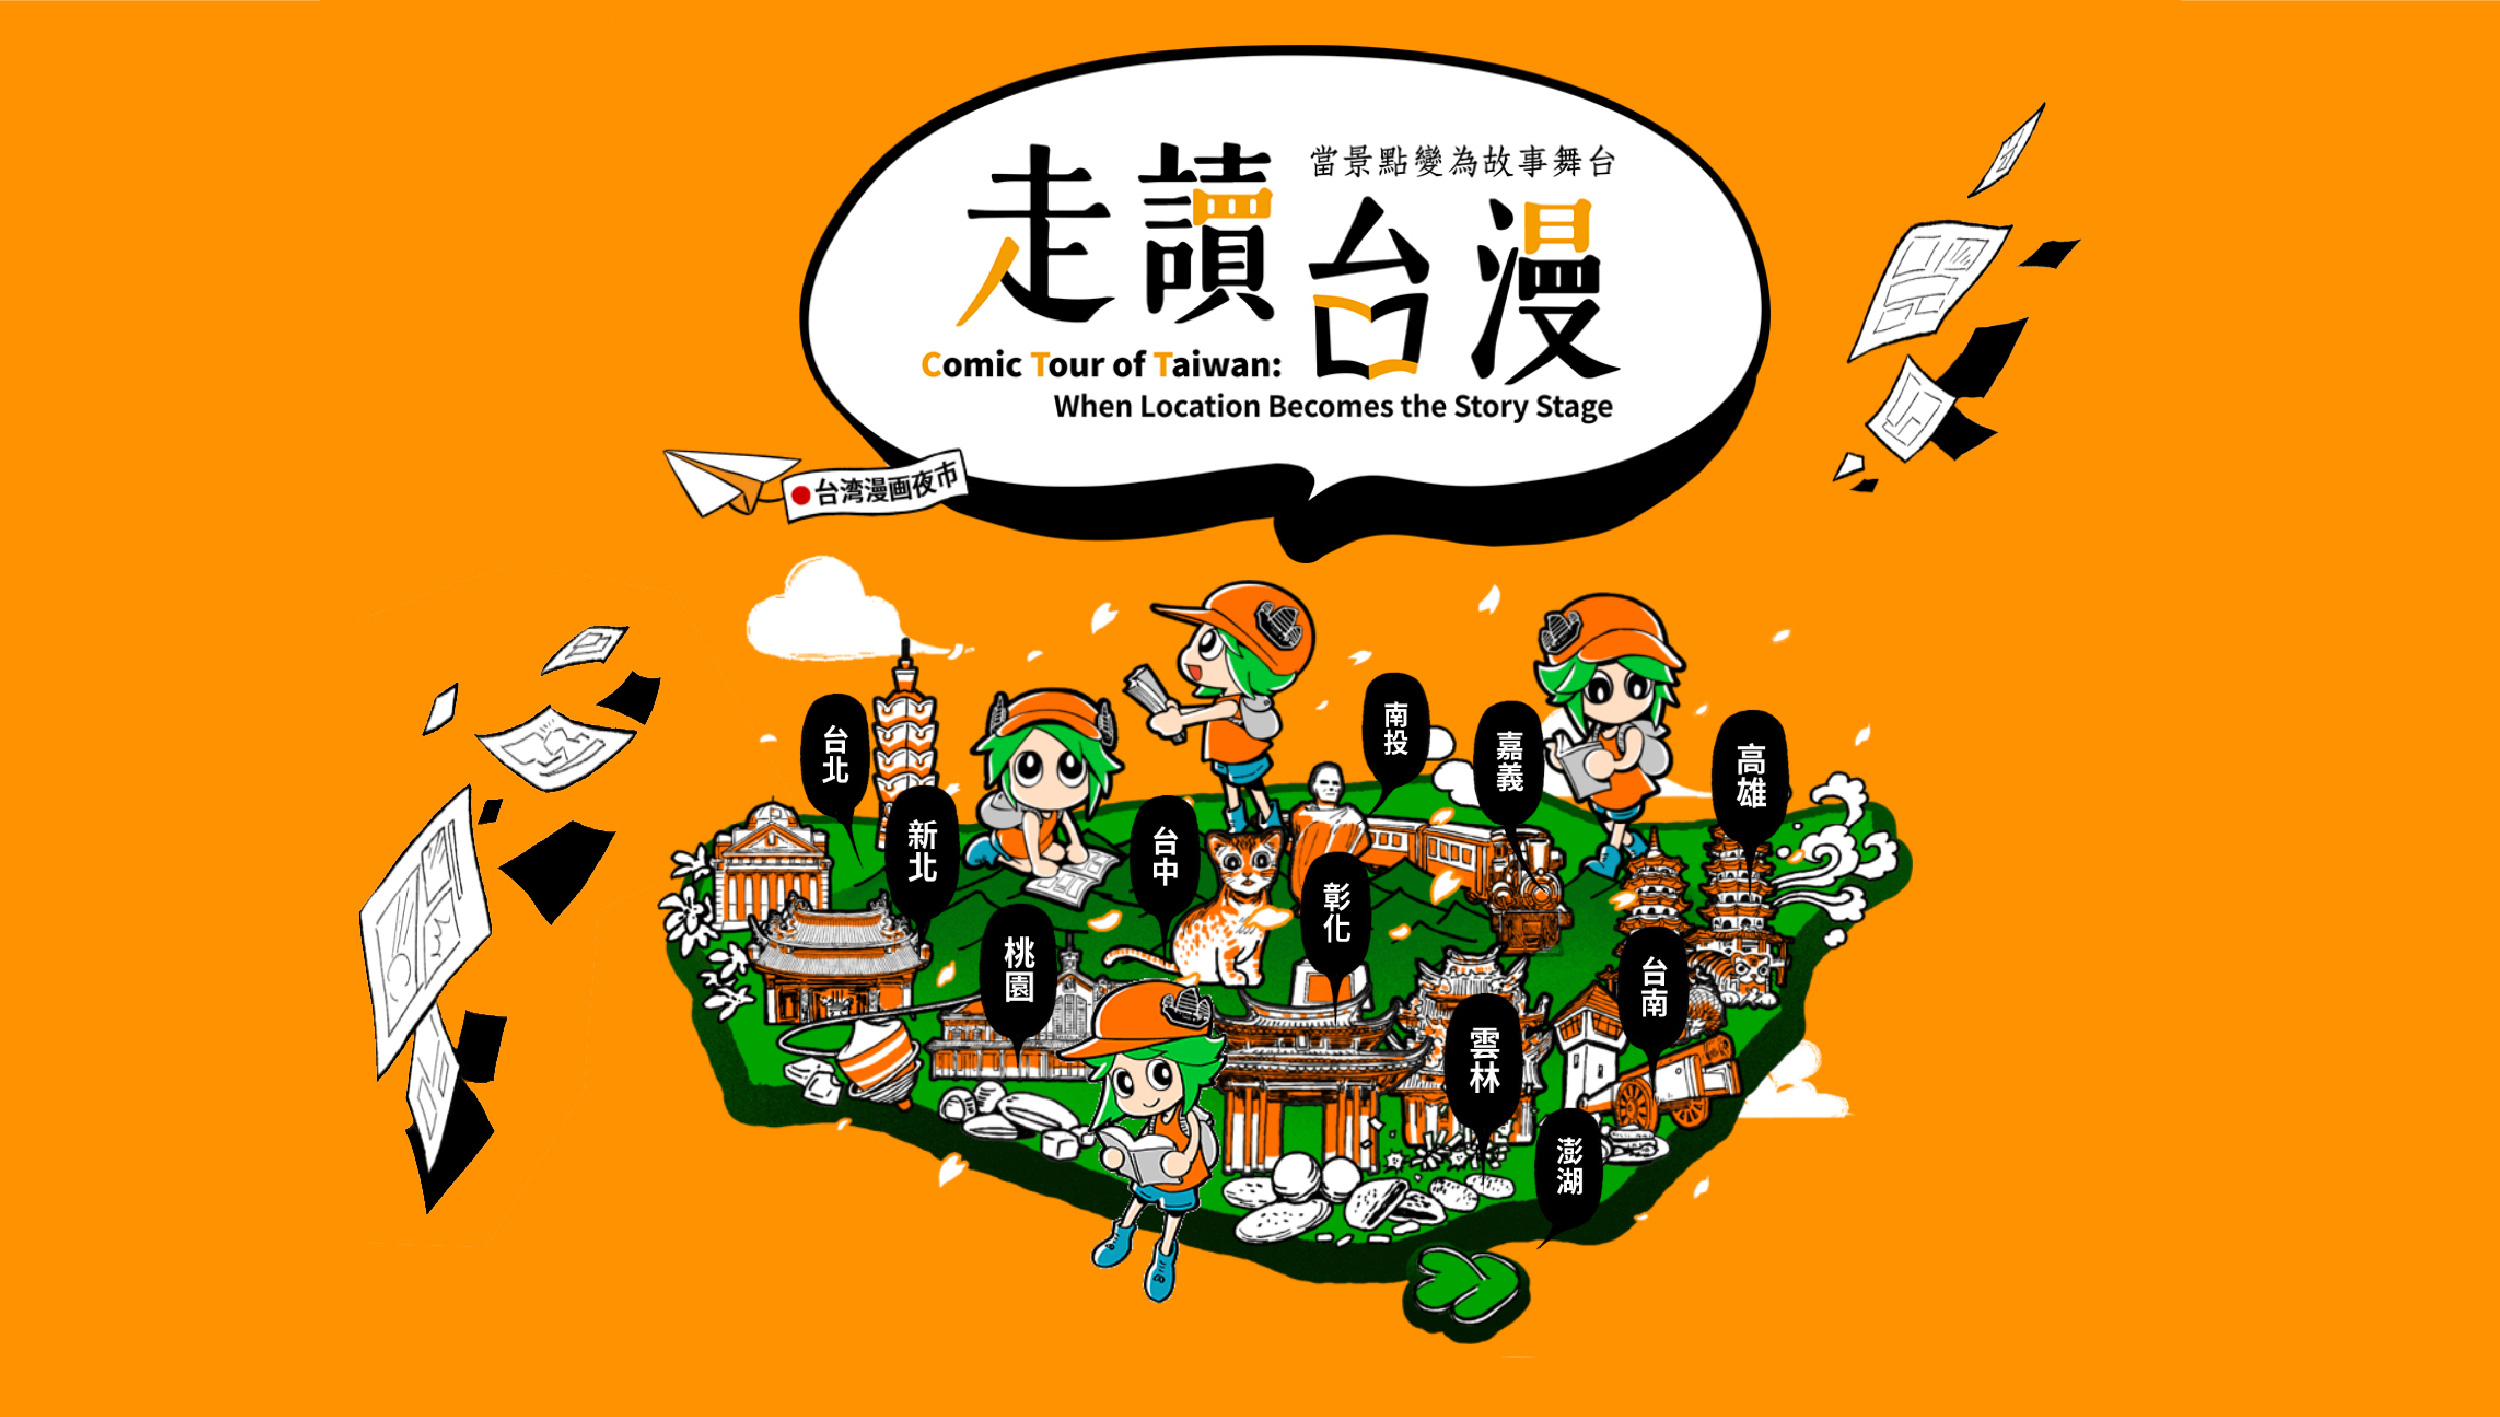 Comic Tour of Taiwan: When Location Becomes the Story Stage